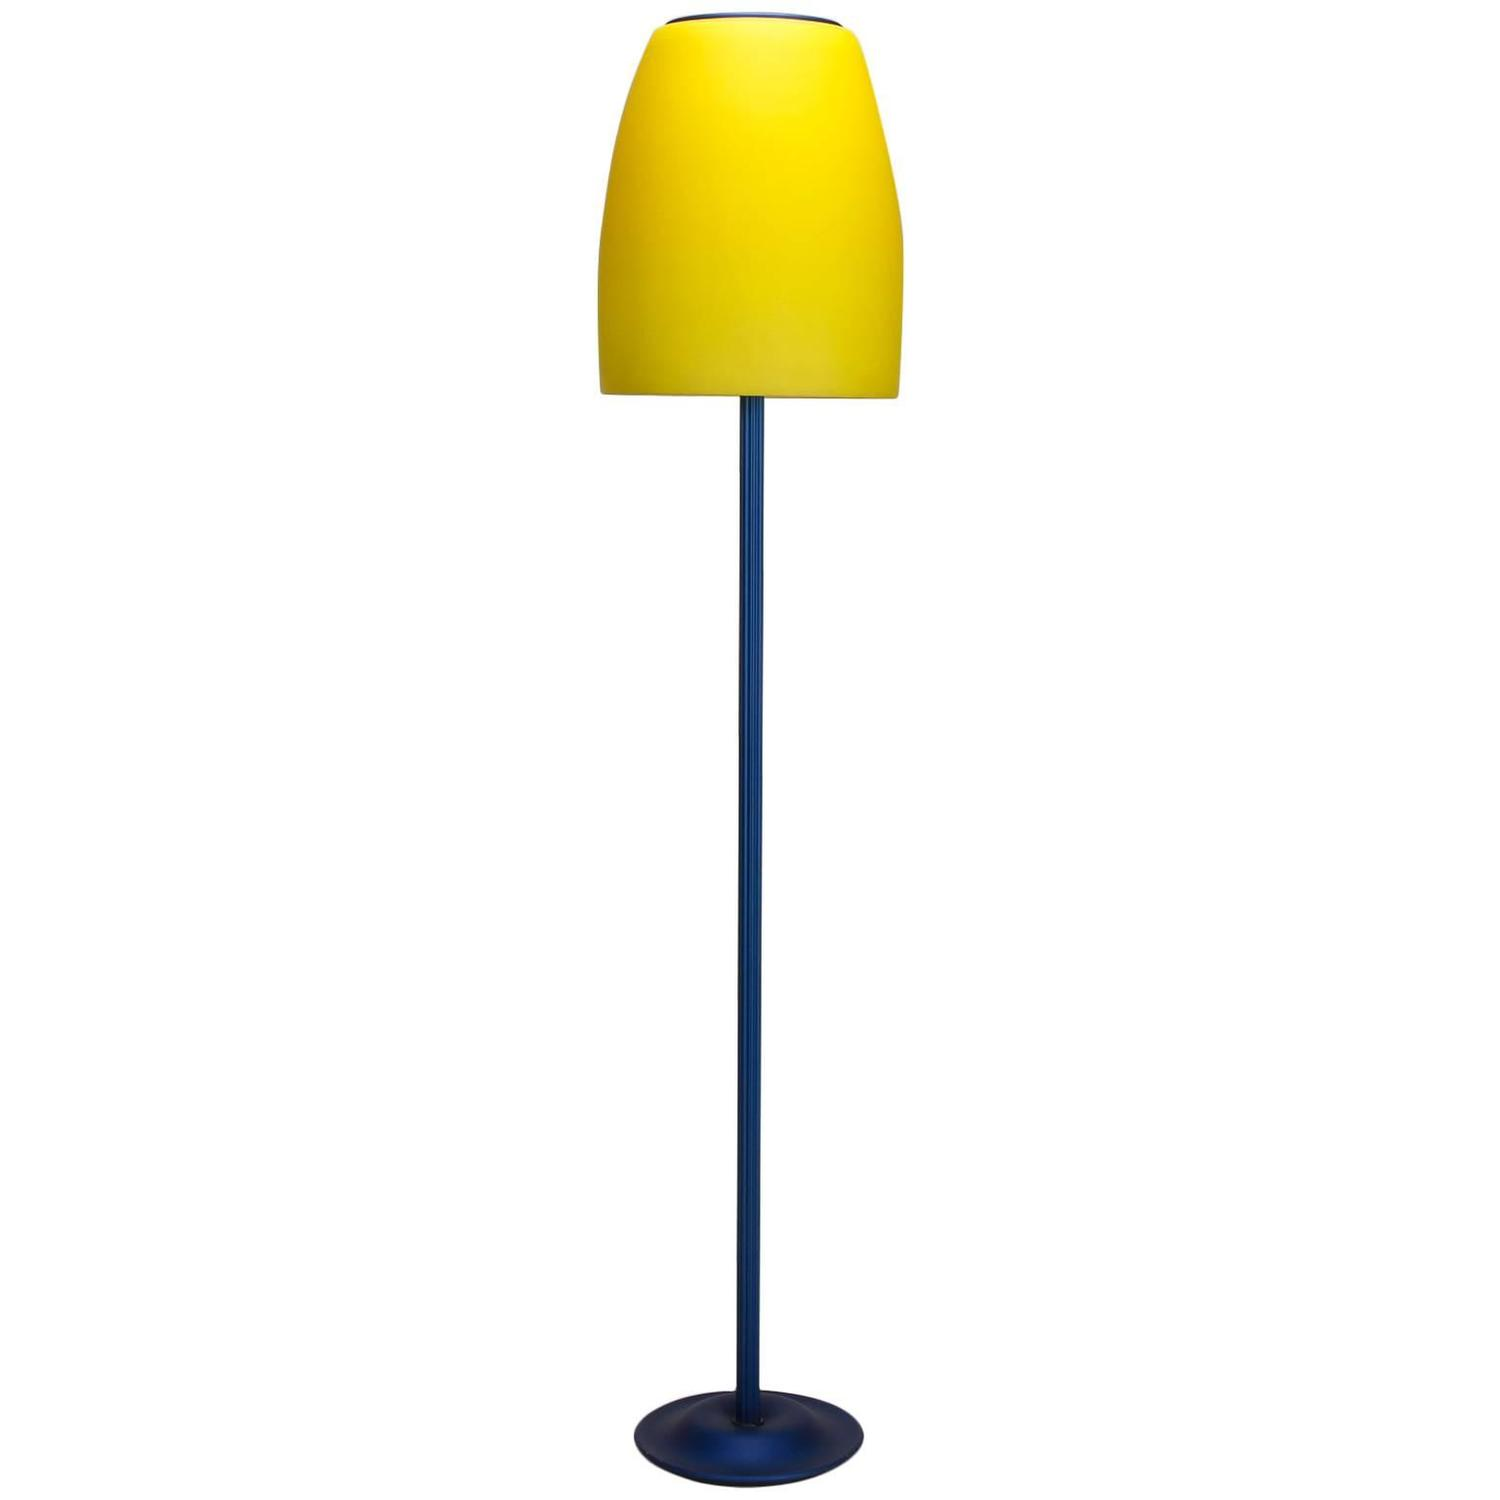 Blue and yellow memphis floor lamp with glass shade for for Macey floor lamp yellow